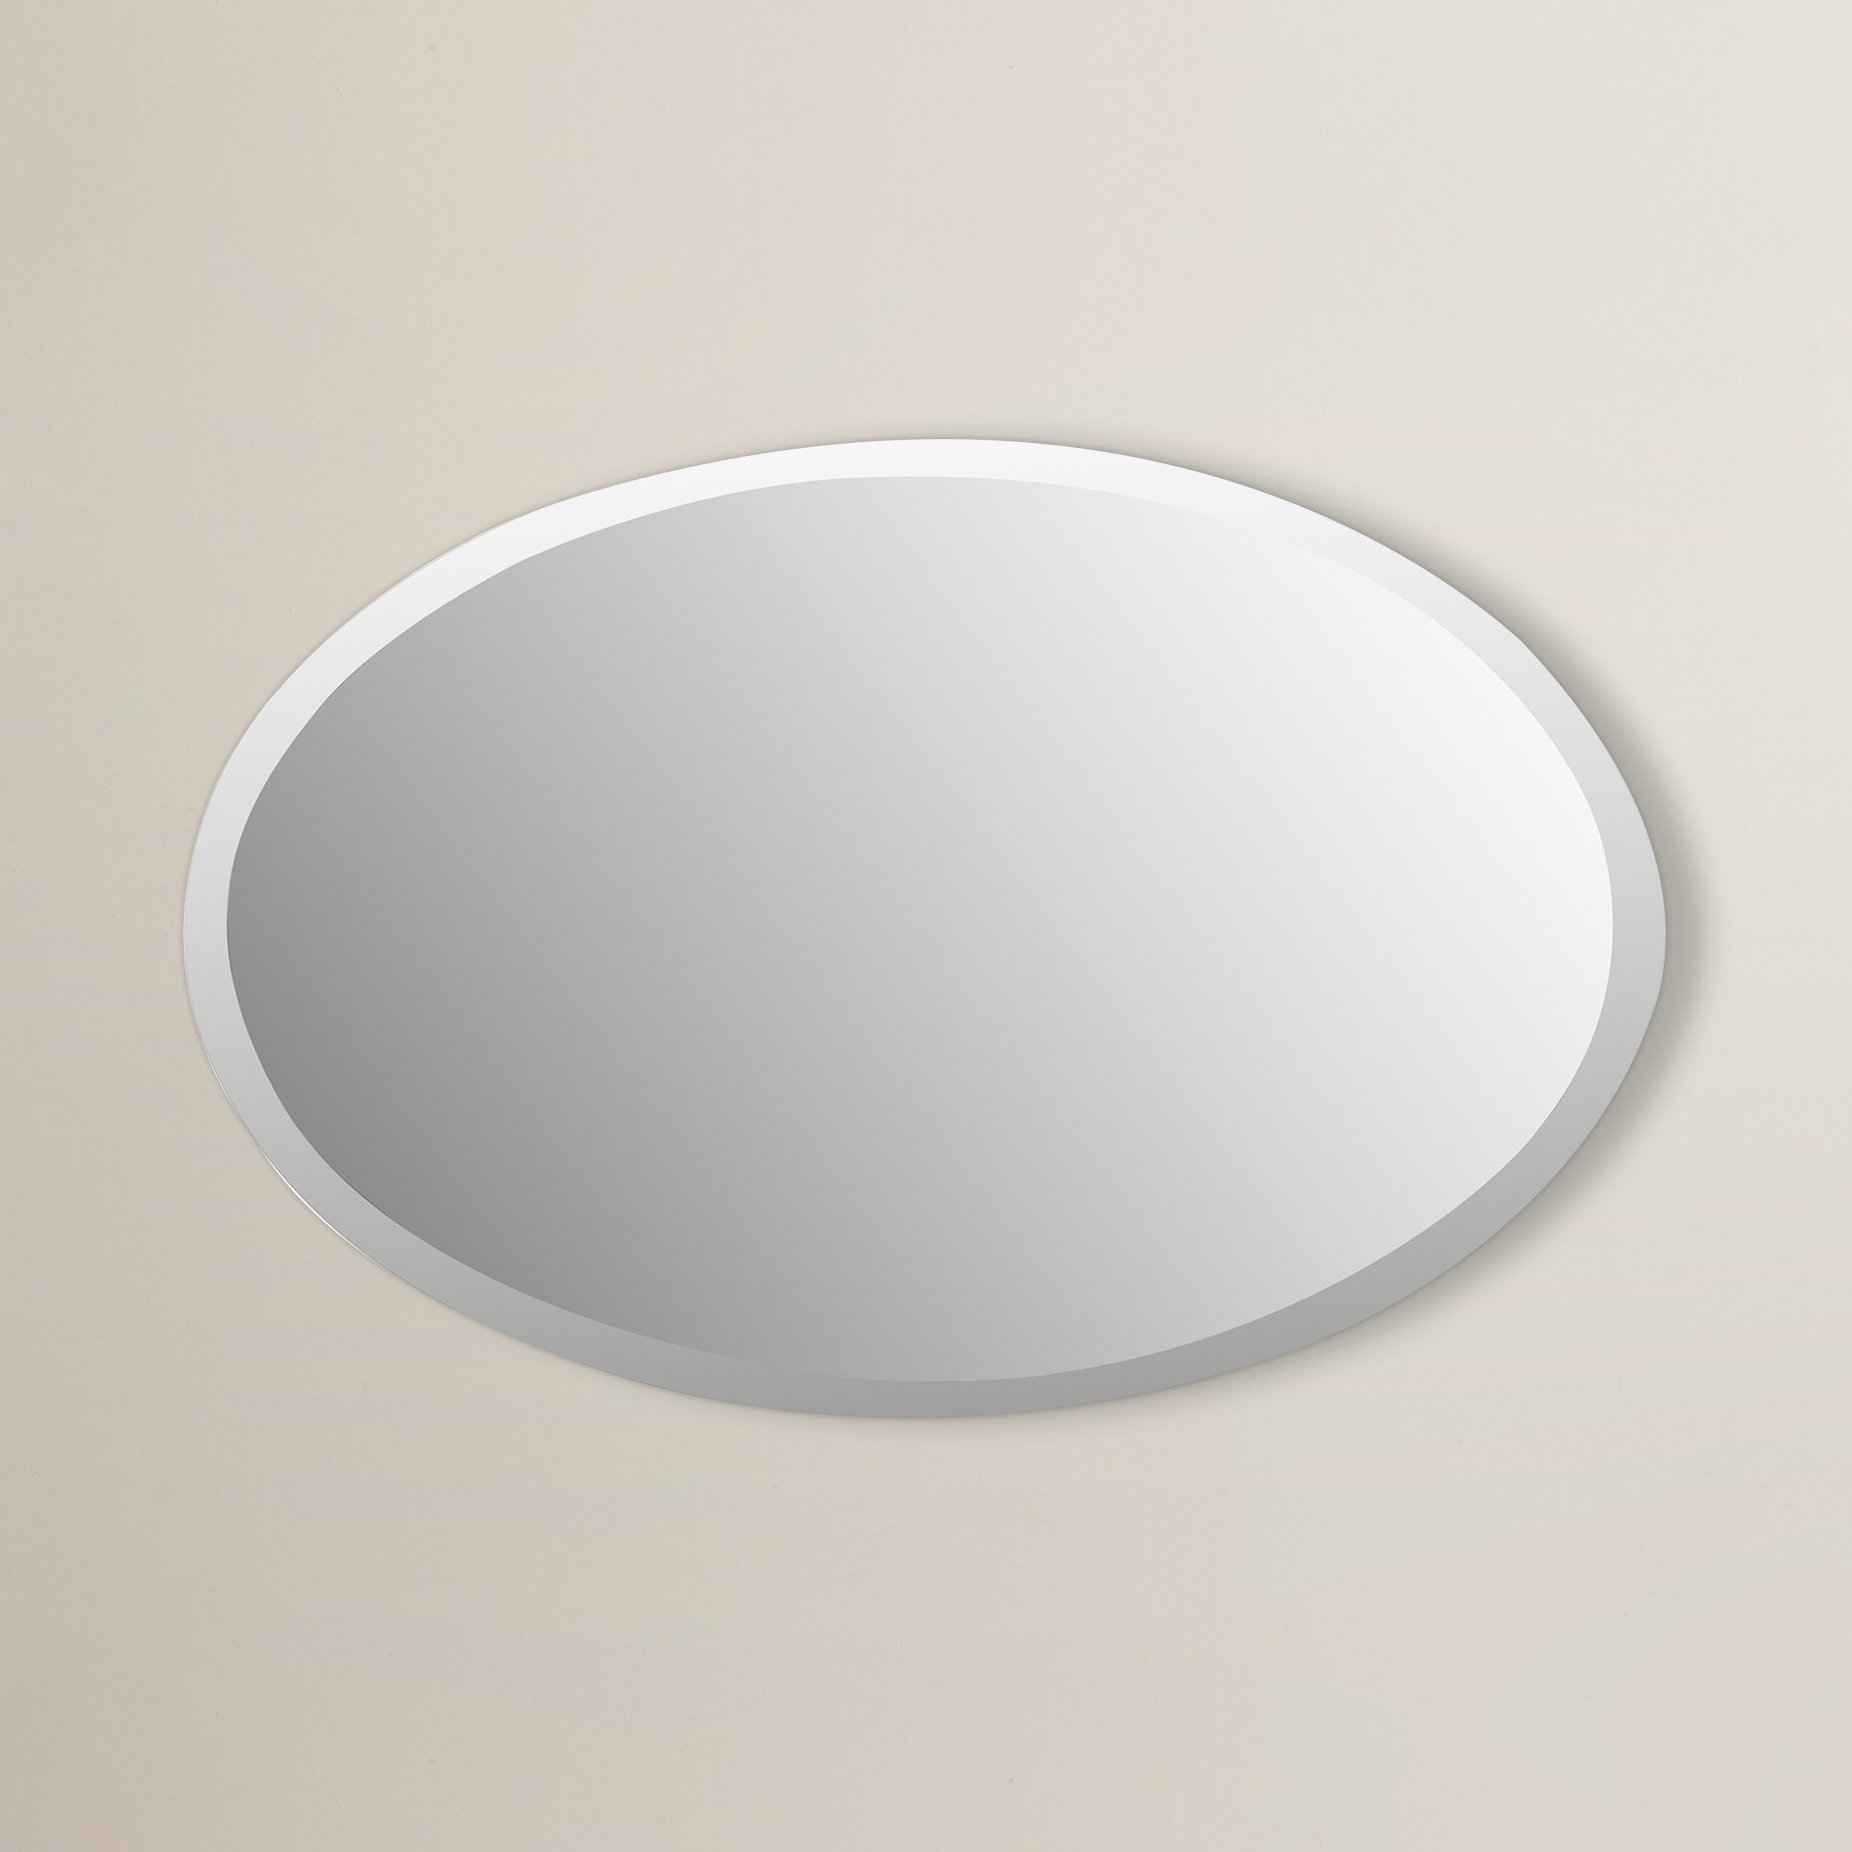 Brayden Studio Oval Bevel Frameless Wall Mirror Reviews Wayfair With Regard To Oval Bevelled Mirror (View 6 of 15)